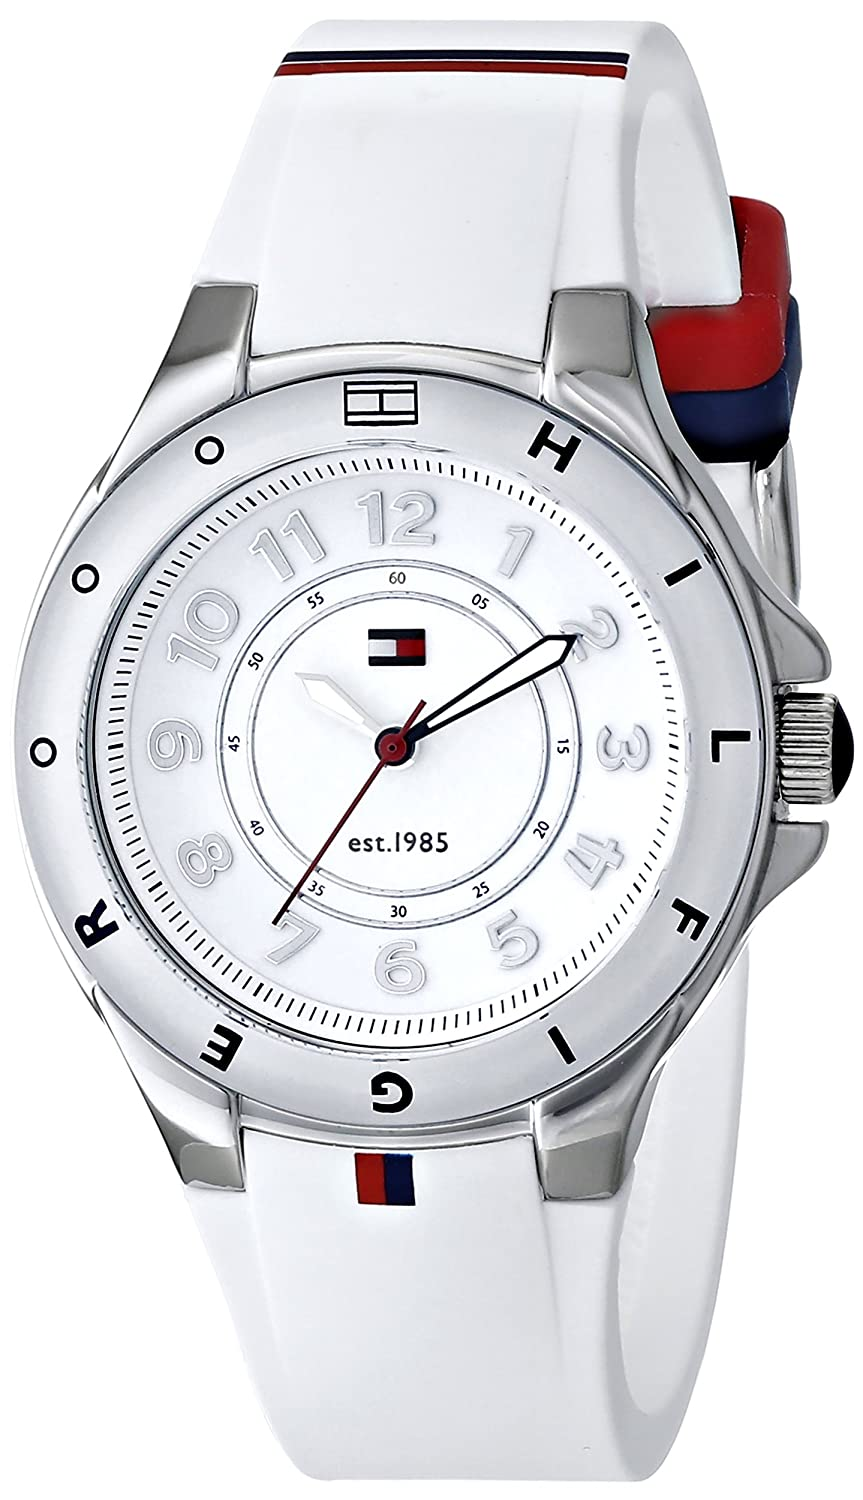 Amazon Global Store!! Women`s Fashion On Watches In Global Store By Amazon | Tommy Hilfiger Women's 1781271 Stainless Steel Watch with White Silicone Band@ Rs.6,857.15